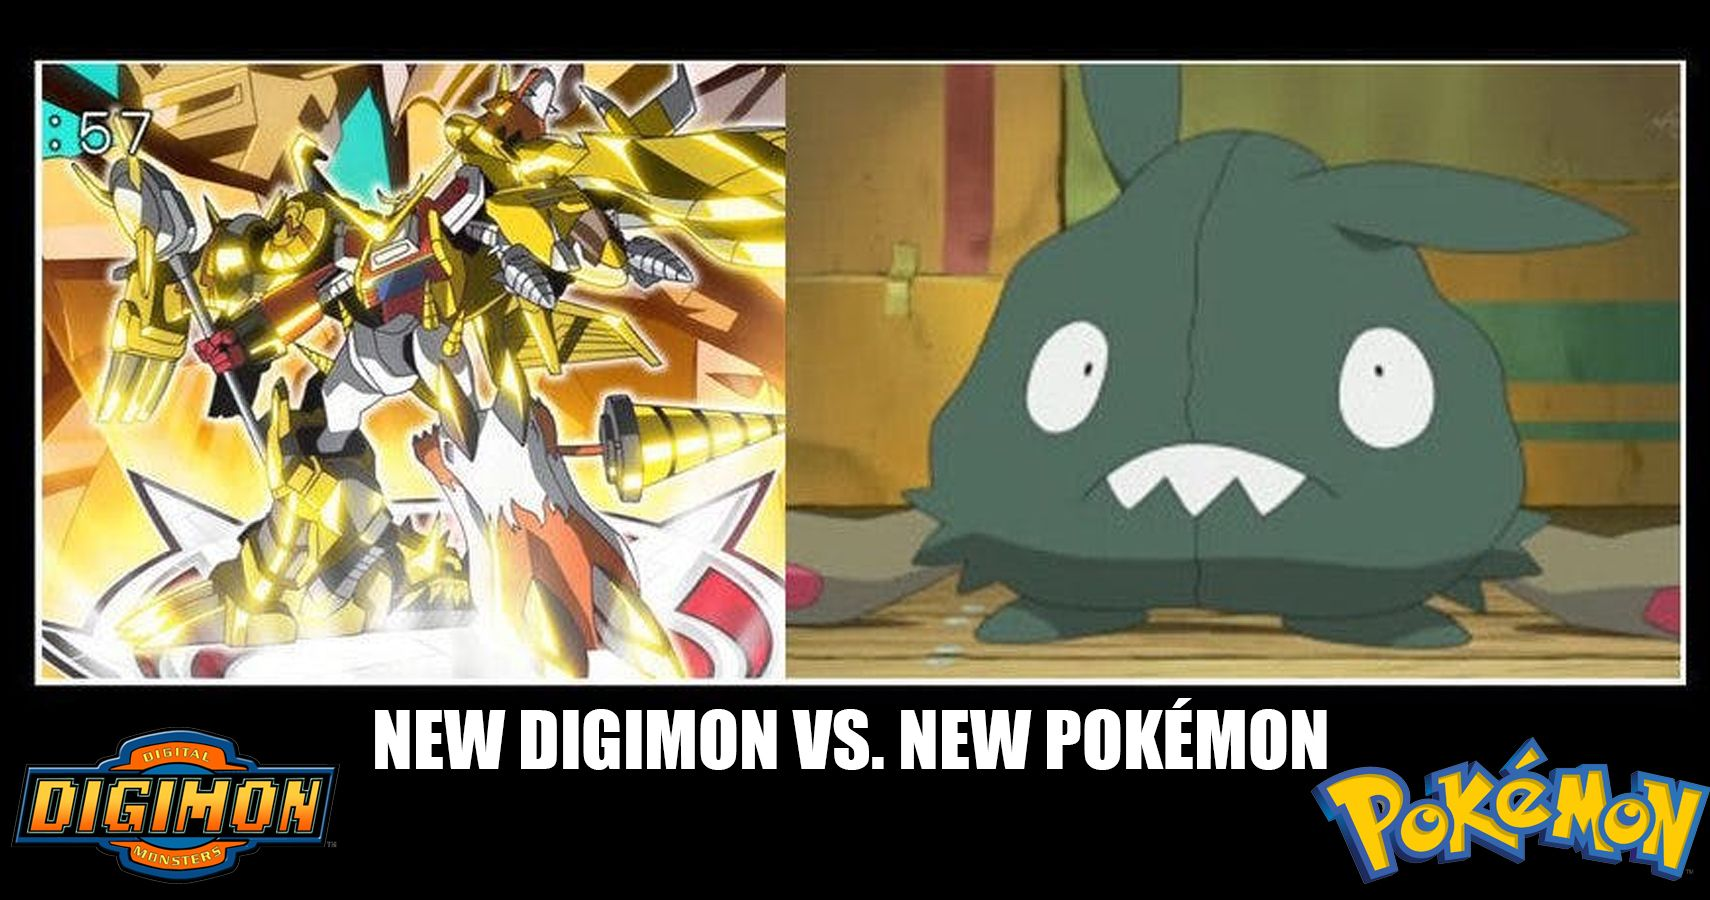 15 Hilarious Pokemon Vs Digimon Memes That Will Leave You Laughing